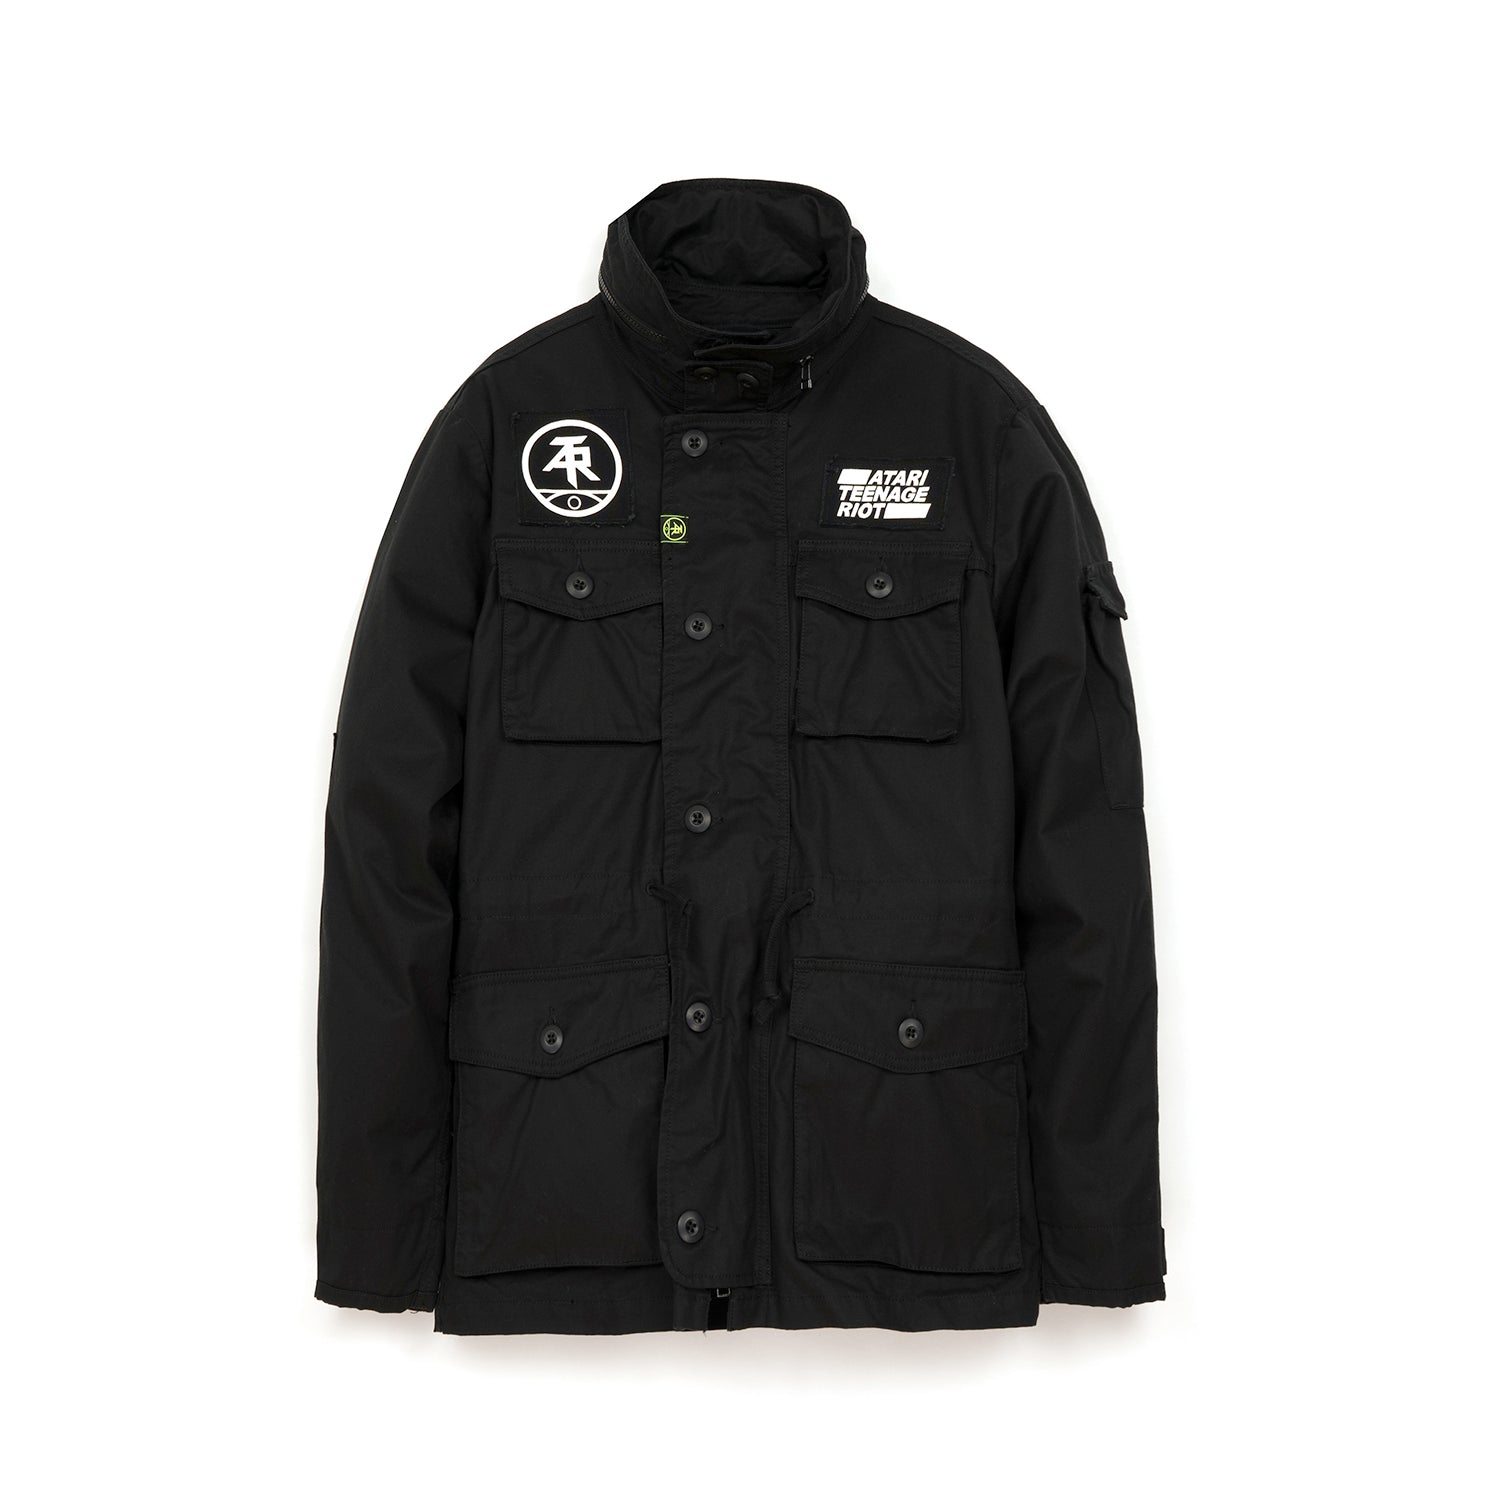 NEIGHBORHOOD 'ATR. M-65' / C-Jkt Black